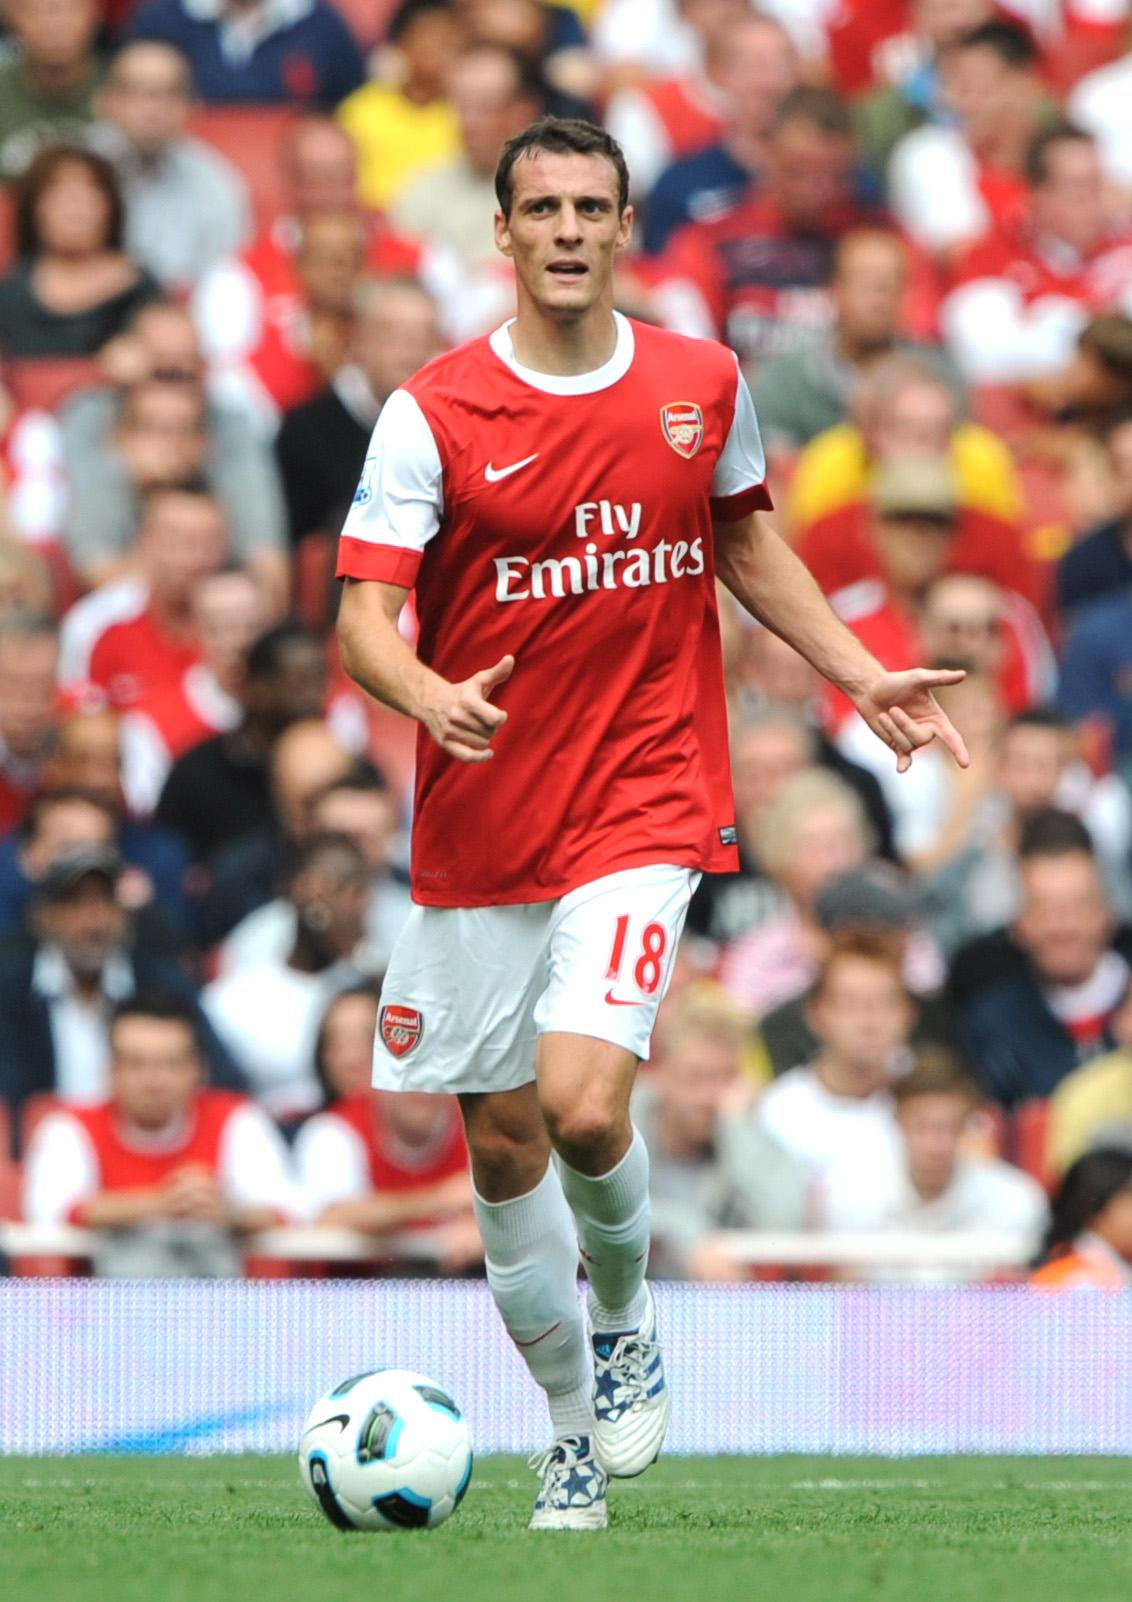 Genuinely the worst defender I've ever seen at Arsenal